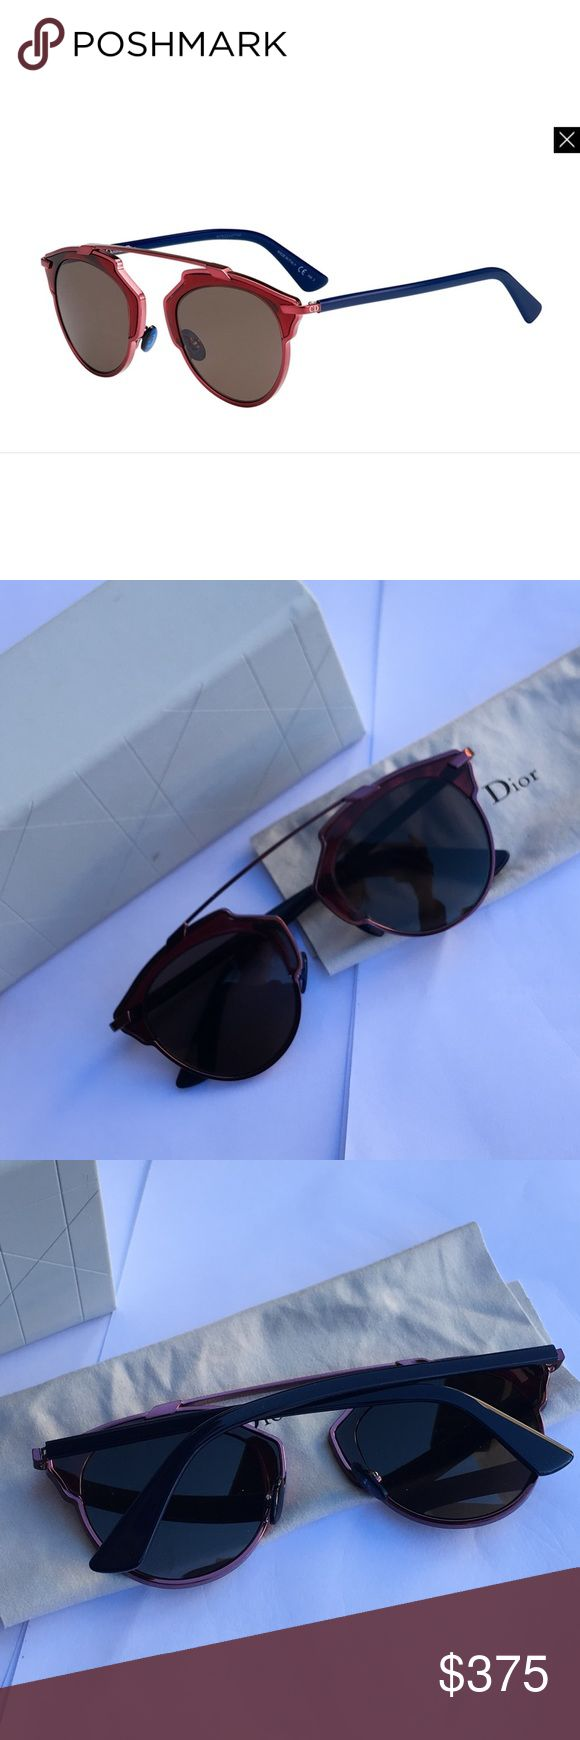 """Christian Dior So Real color block sunglasses Plum Brand new never worn or displayed . Came directly from Neiman Marcus online . Perfect condition . Currently retailing for $515+ tax DETAILS Dior """"So Real"""" acetate colorblock sunglasses. Round lenses. Metal brow bar. Contrast nose pads. Peaked sides. 100% UVA/UVB protection. Made in Italy.. Christian Dior Accessories Sunglasses"""